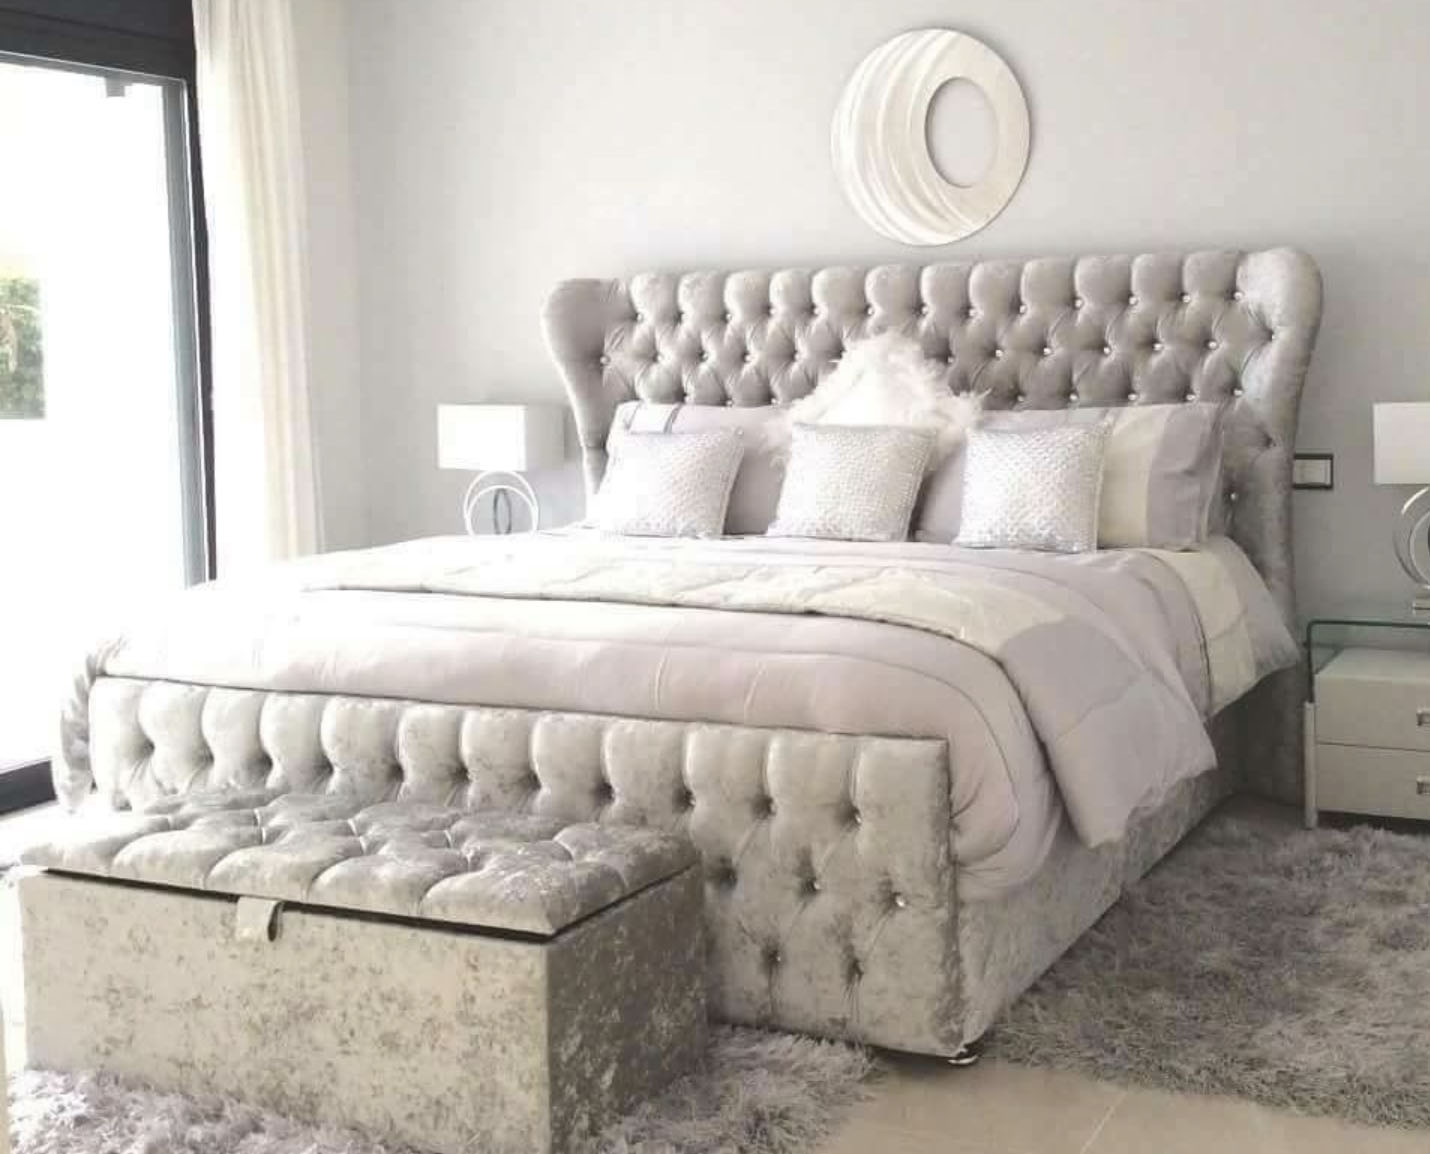 Oxford Wingback Bed Crushed Velvet Barclay Beds Oxford Wingback Bed Crushed Velvet